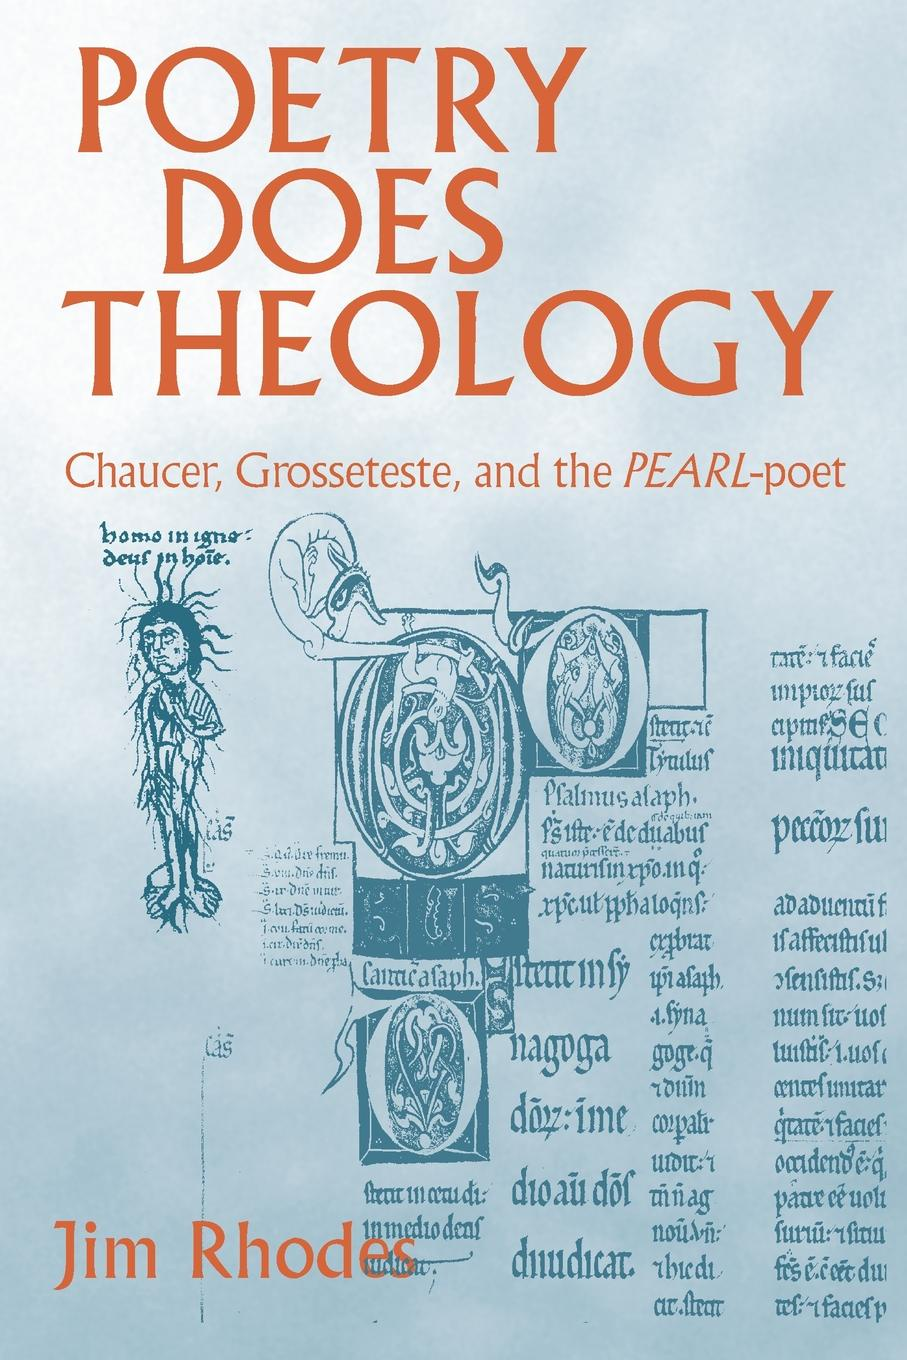 Jim Rhodes Poetry Does Theology. Chaucer, Grosseteste, and the Pearl-poet